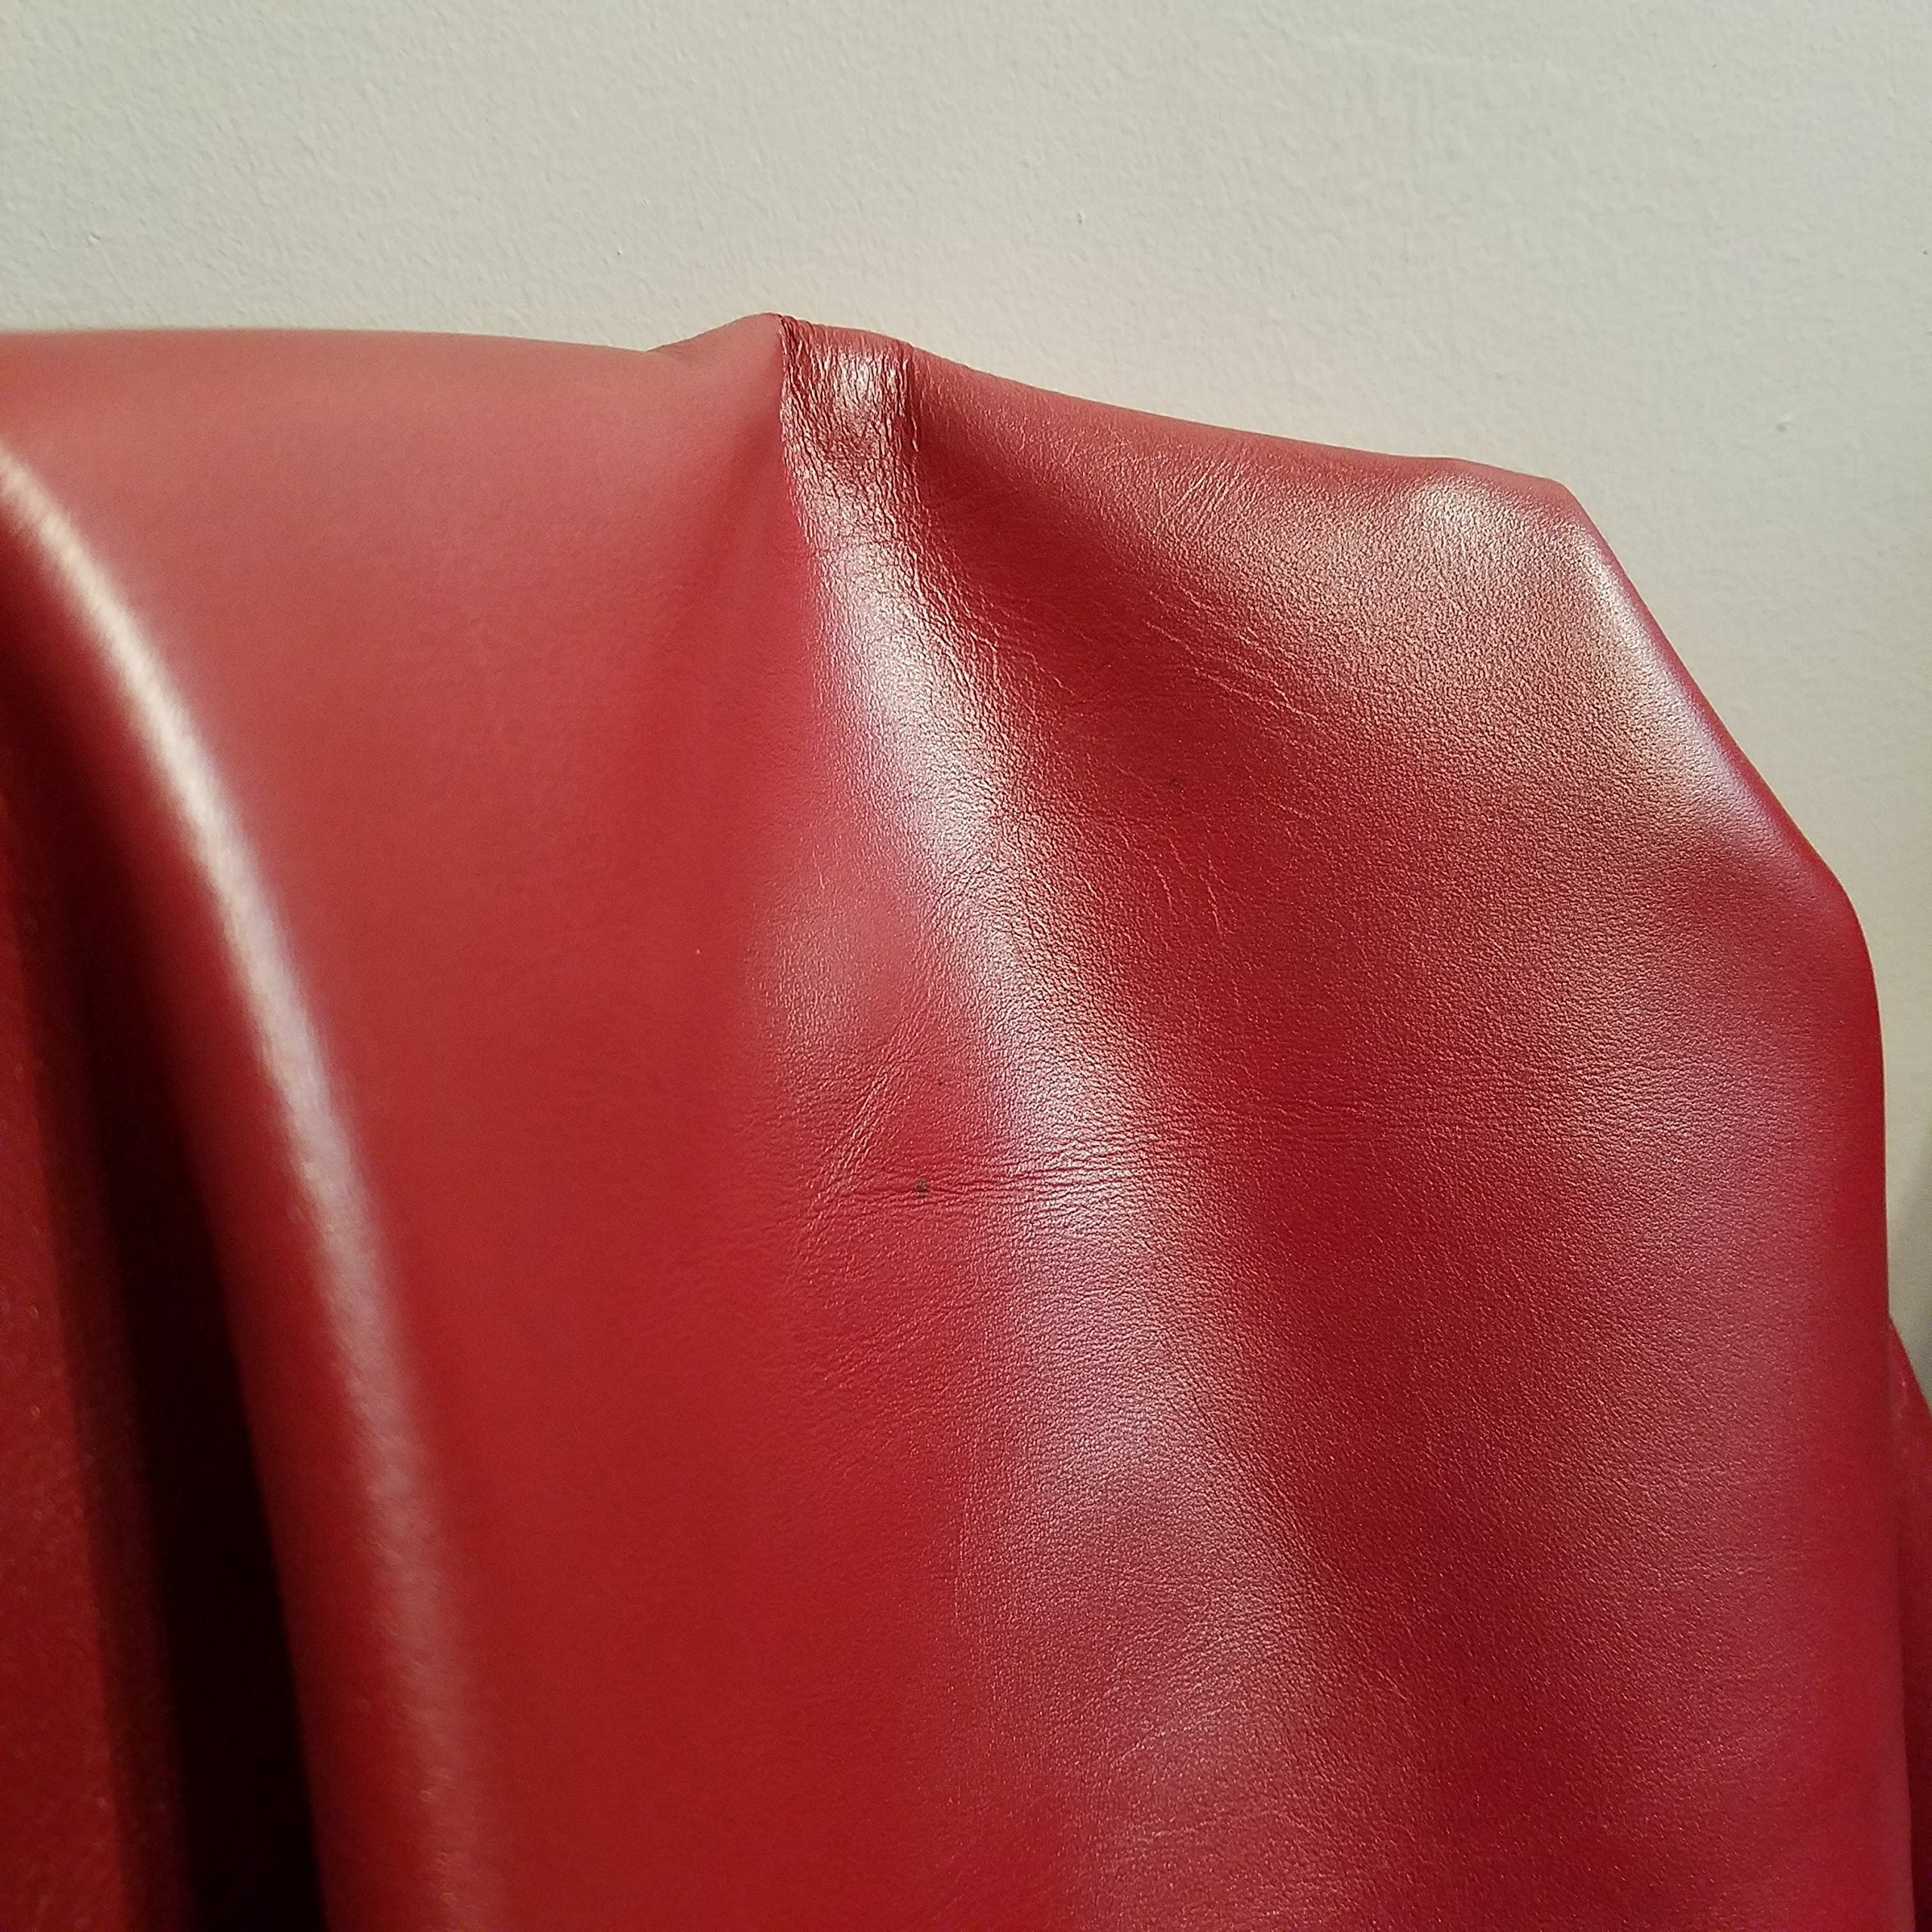 NAT Leathers Red Shimmer Soft Nappa Leather 2.0-2.5 upholstery craft, shoe, bookbinding Handbag Cowhide Genuine Cow Leather Hide Skin (18-21 sq.ft.)